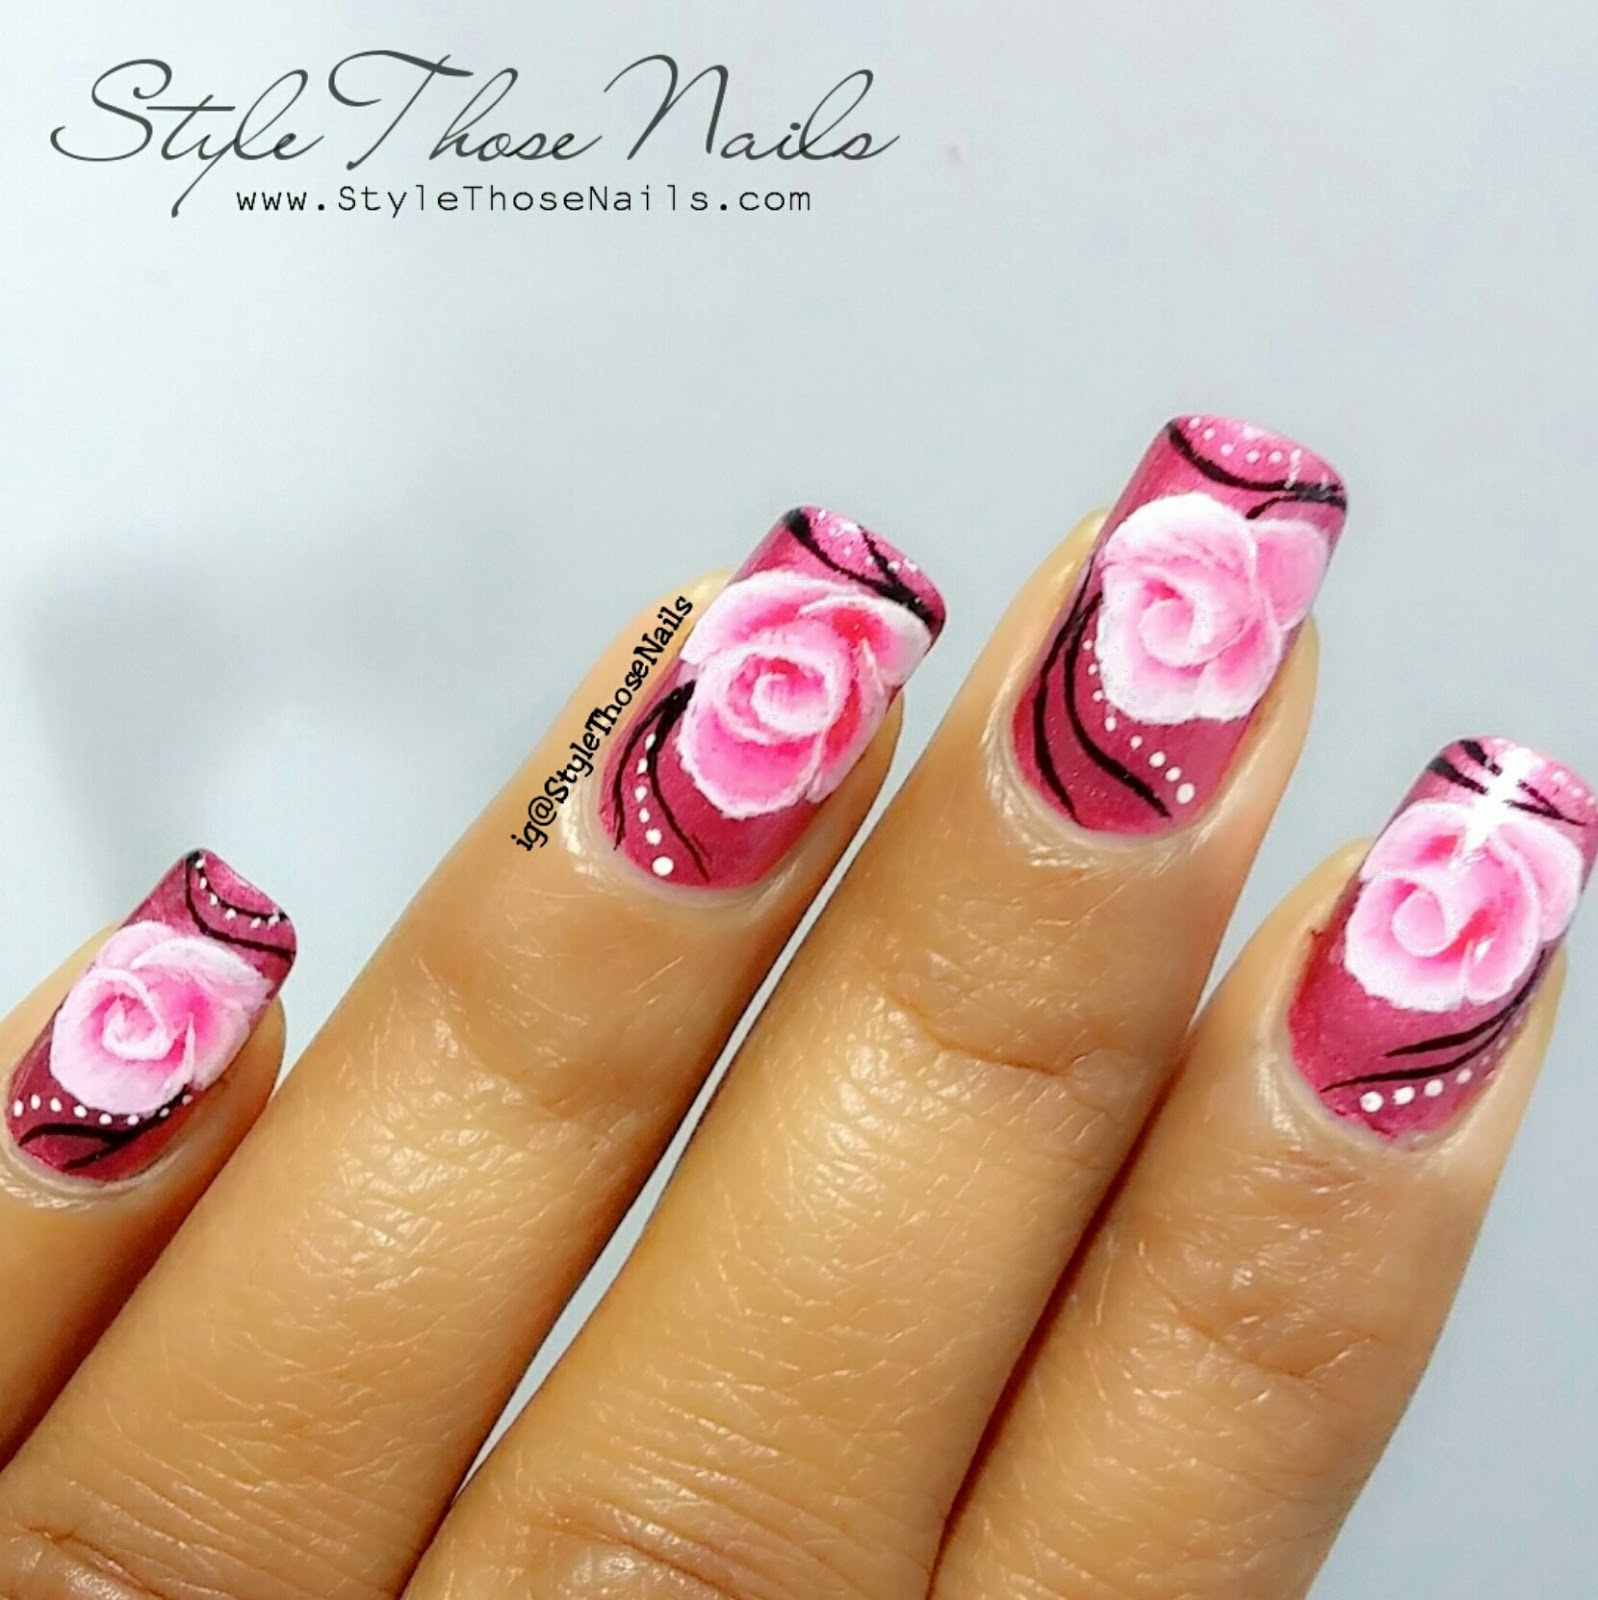 Style Those Nails One Stroke Rose Nailart Using Born Pretty Store